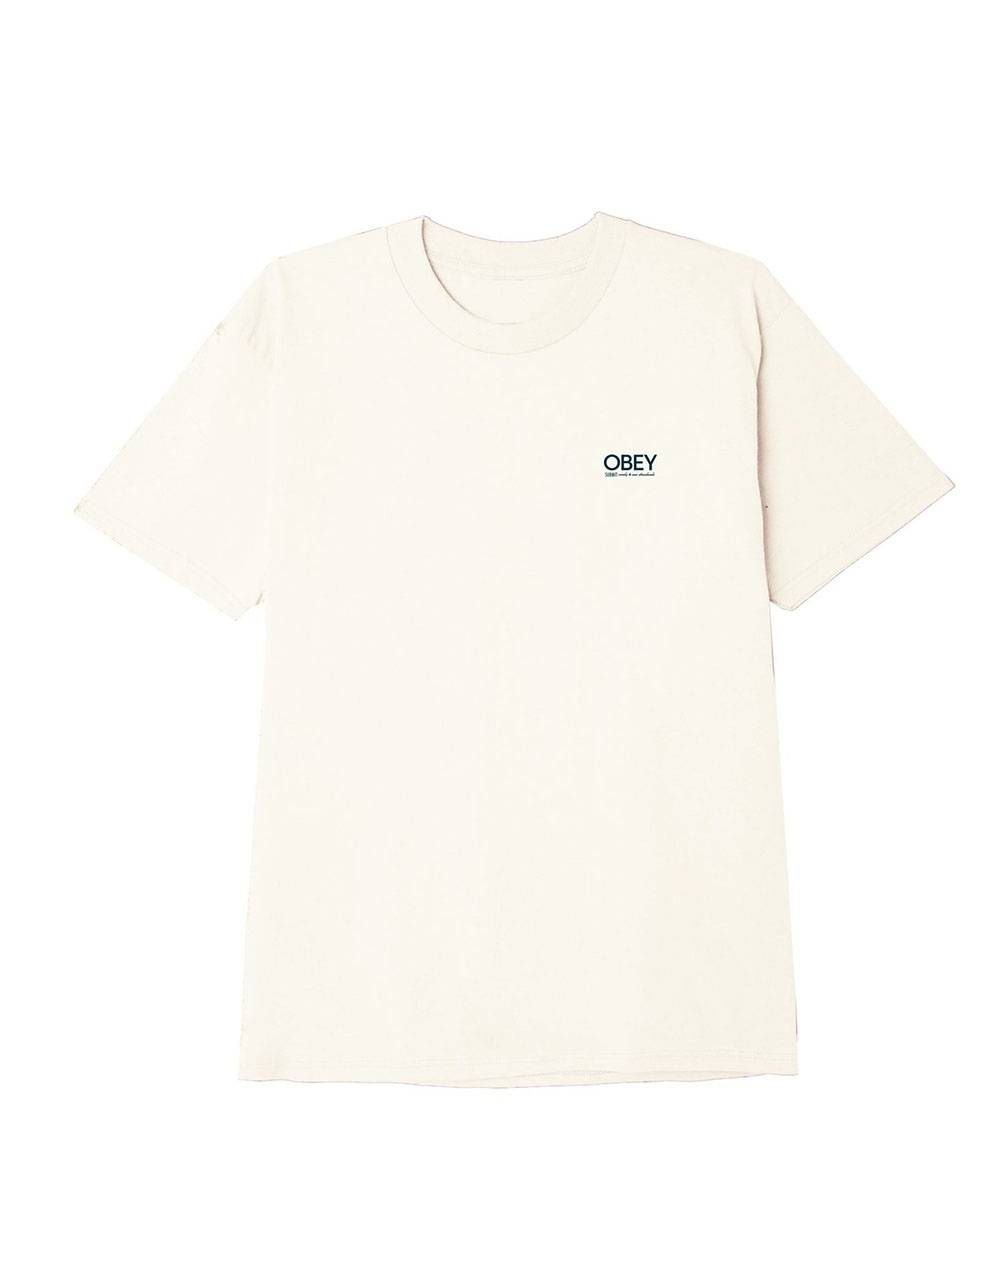 Obey Conformity standards classic tee - cream obey T-shirt 36,89 €